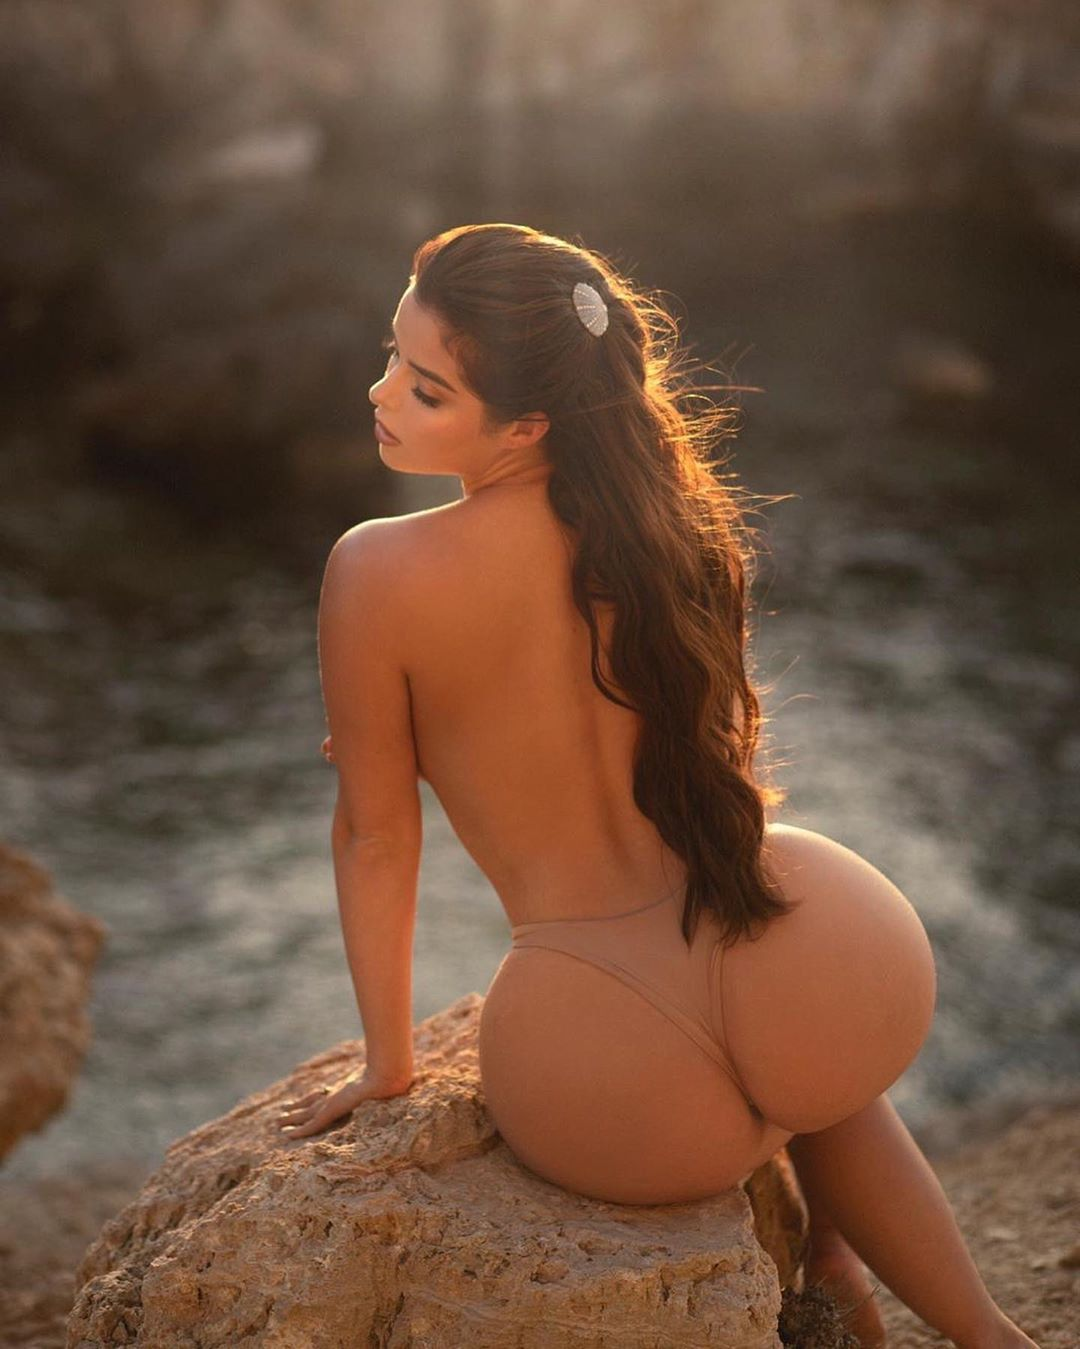 Demi Rose Mawby Fantastic Big Ass In Thong